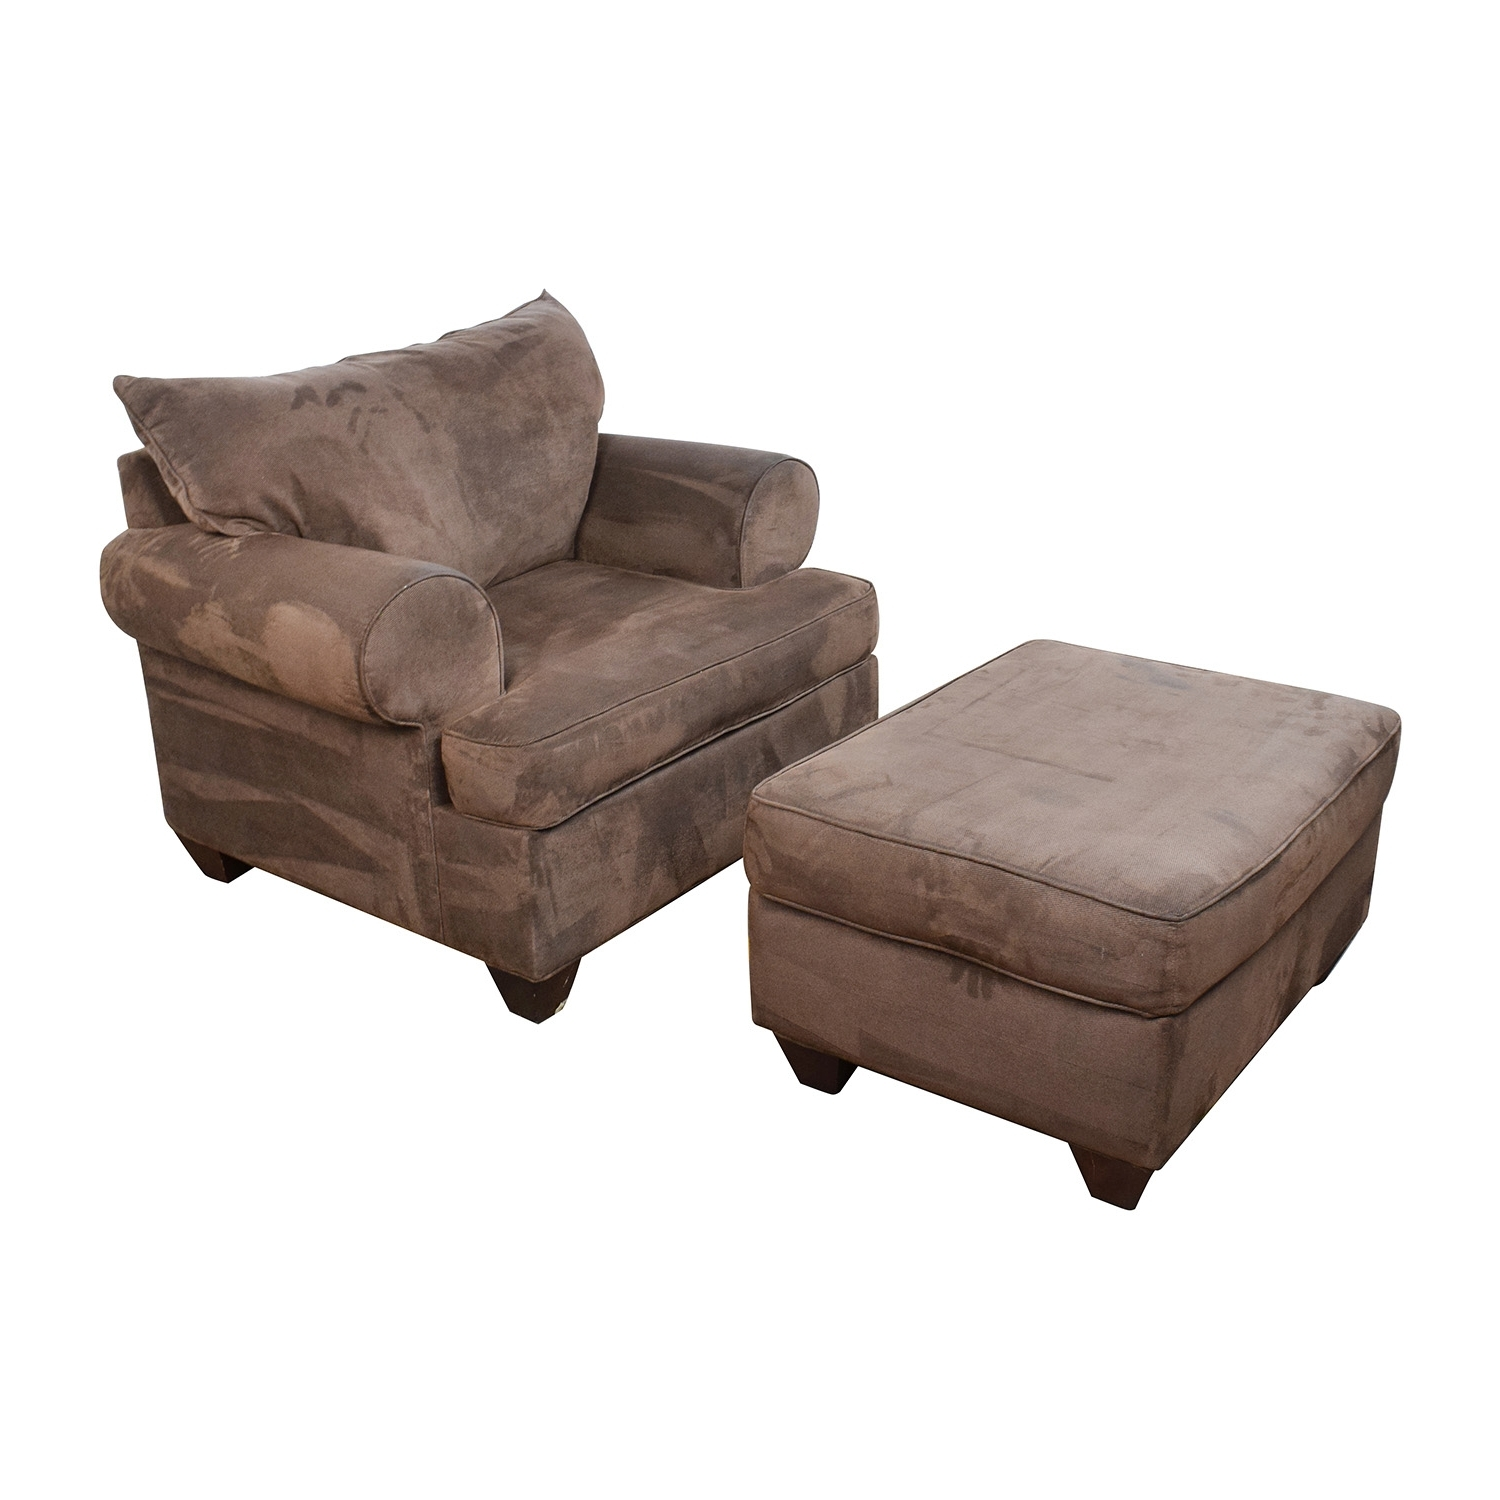 [%67% Off – Dark Brown Sofa Chair With Ottoman / Chairs Pertaining To Favorite Brown Sofa Chairs|Brown Sofa Chairs Regarding Widely Used 67% Off – Dark Brown Sofa Chair With Ottoman / Chairs|Widely Used Brown Sofa Chairs Regarding 67% Off – Dark Brown Sofa Chair With Ottoman / Chairs|2018 67% Off – Dark Brown Sofa Chair With Ottoman / Chairs Regarding Brown Sofa Chairs%] (View 5 of 20)